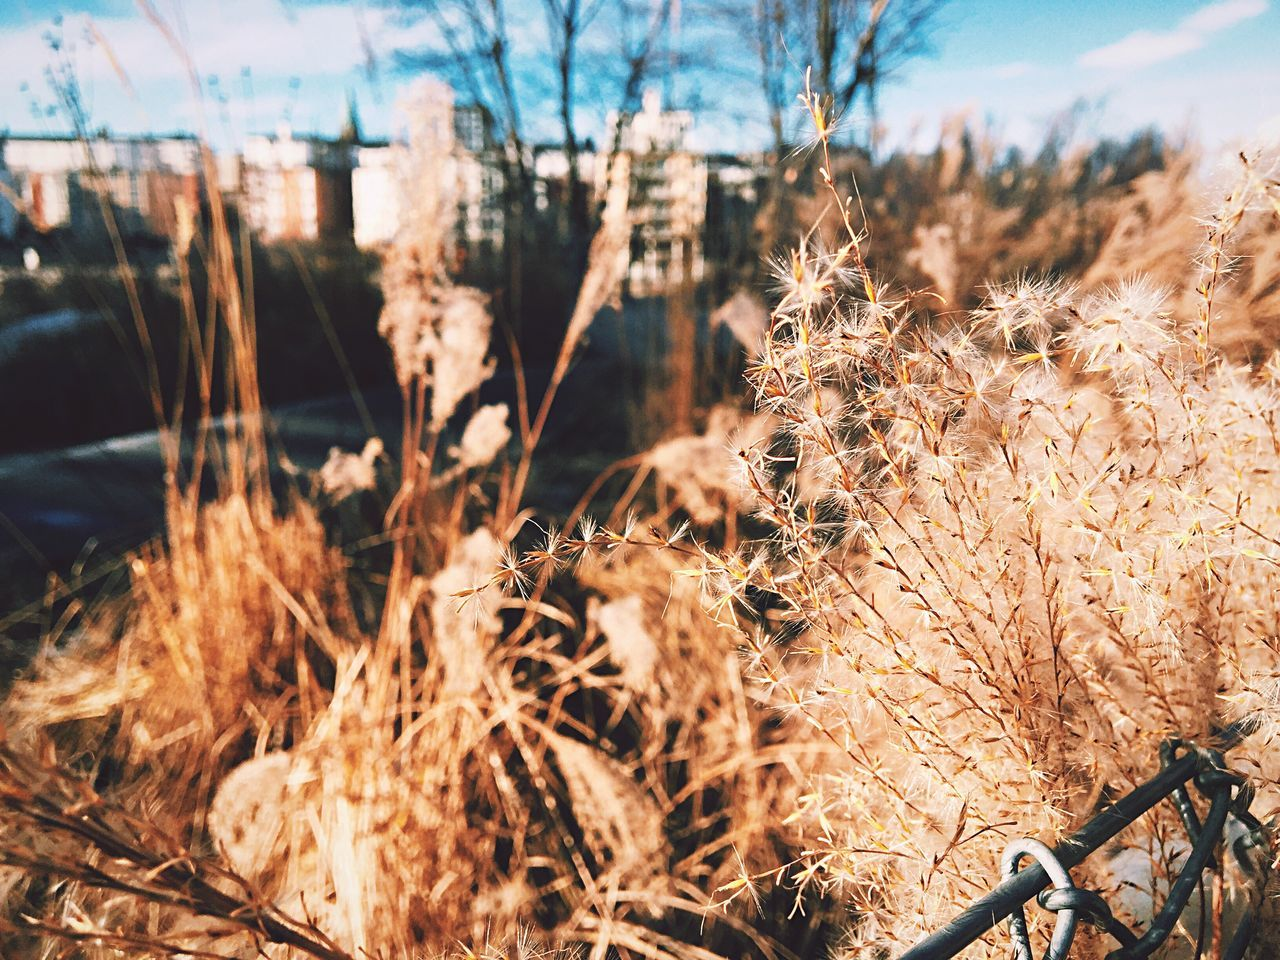 Another kind of winter. Nature Growth Field Outdoors No People Close-up Plant Day Beauty In Nature Winter Weather